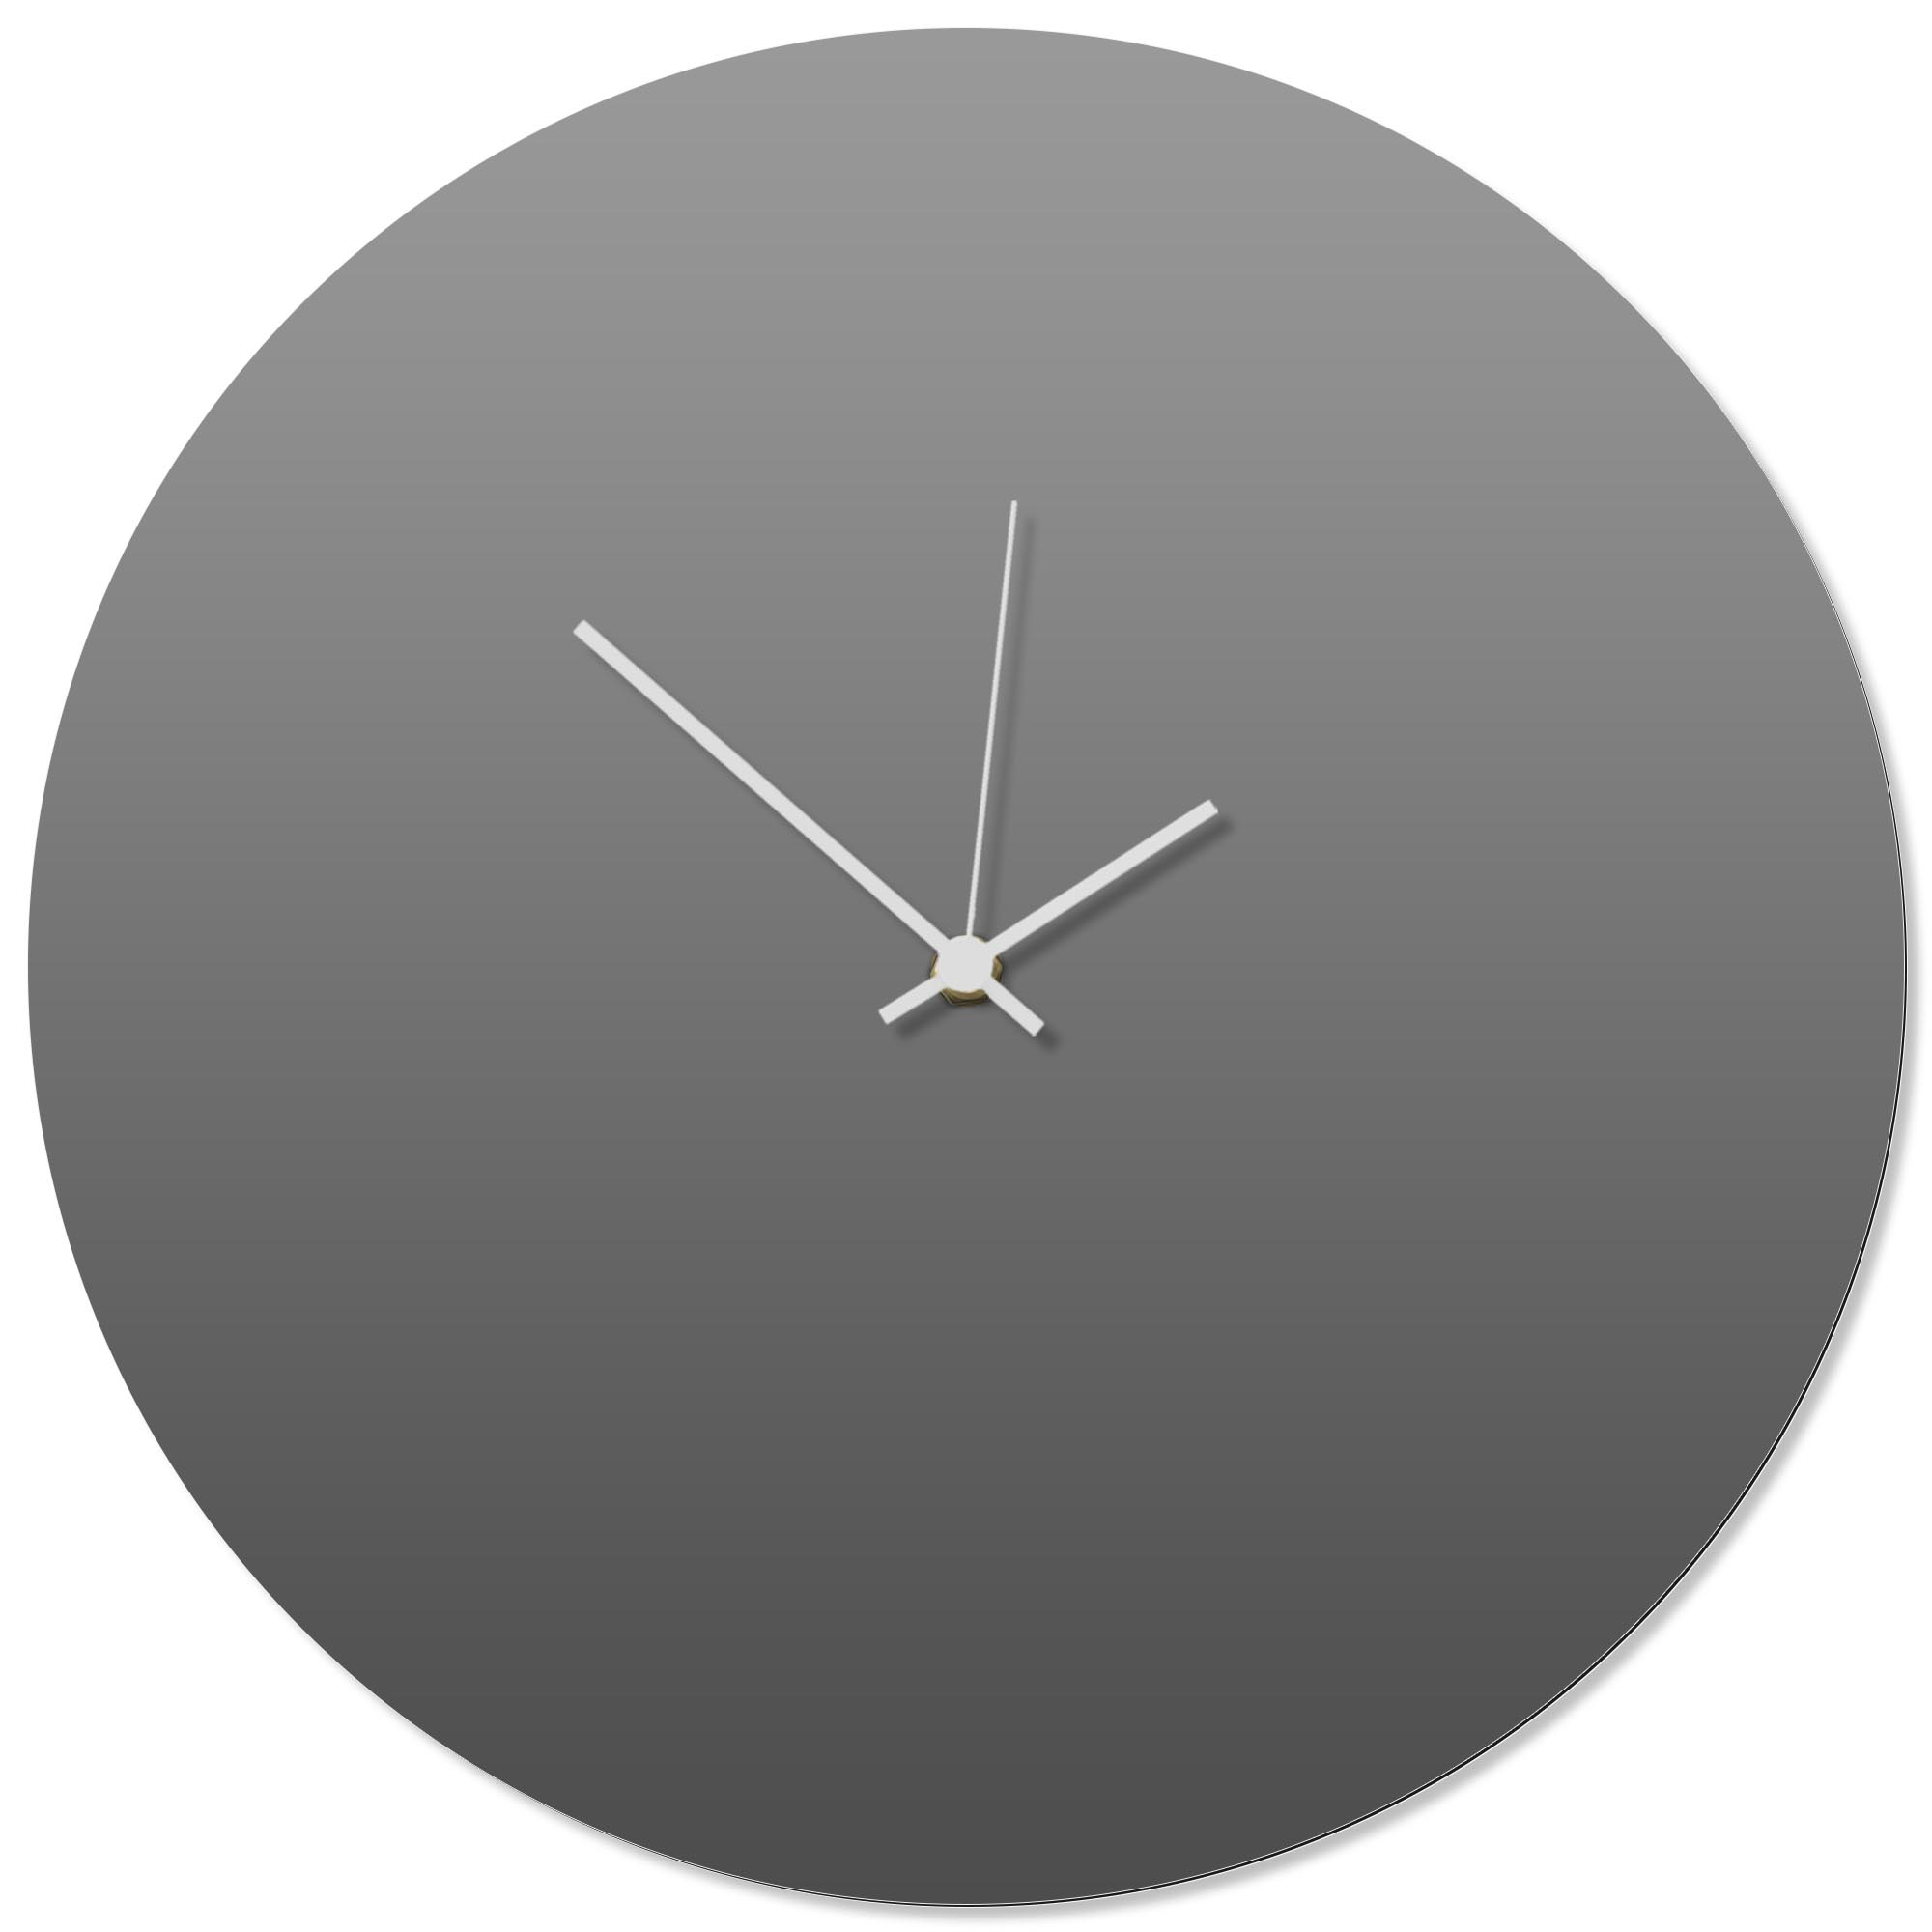 Grayout White Circle Clock 16x16in. Aluminum Polymetal